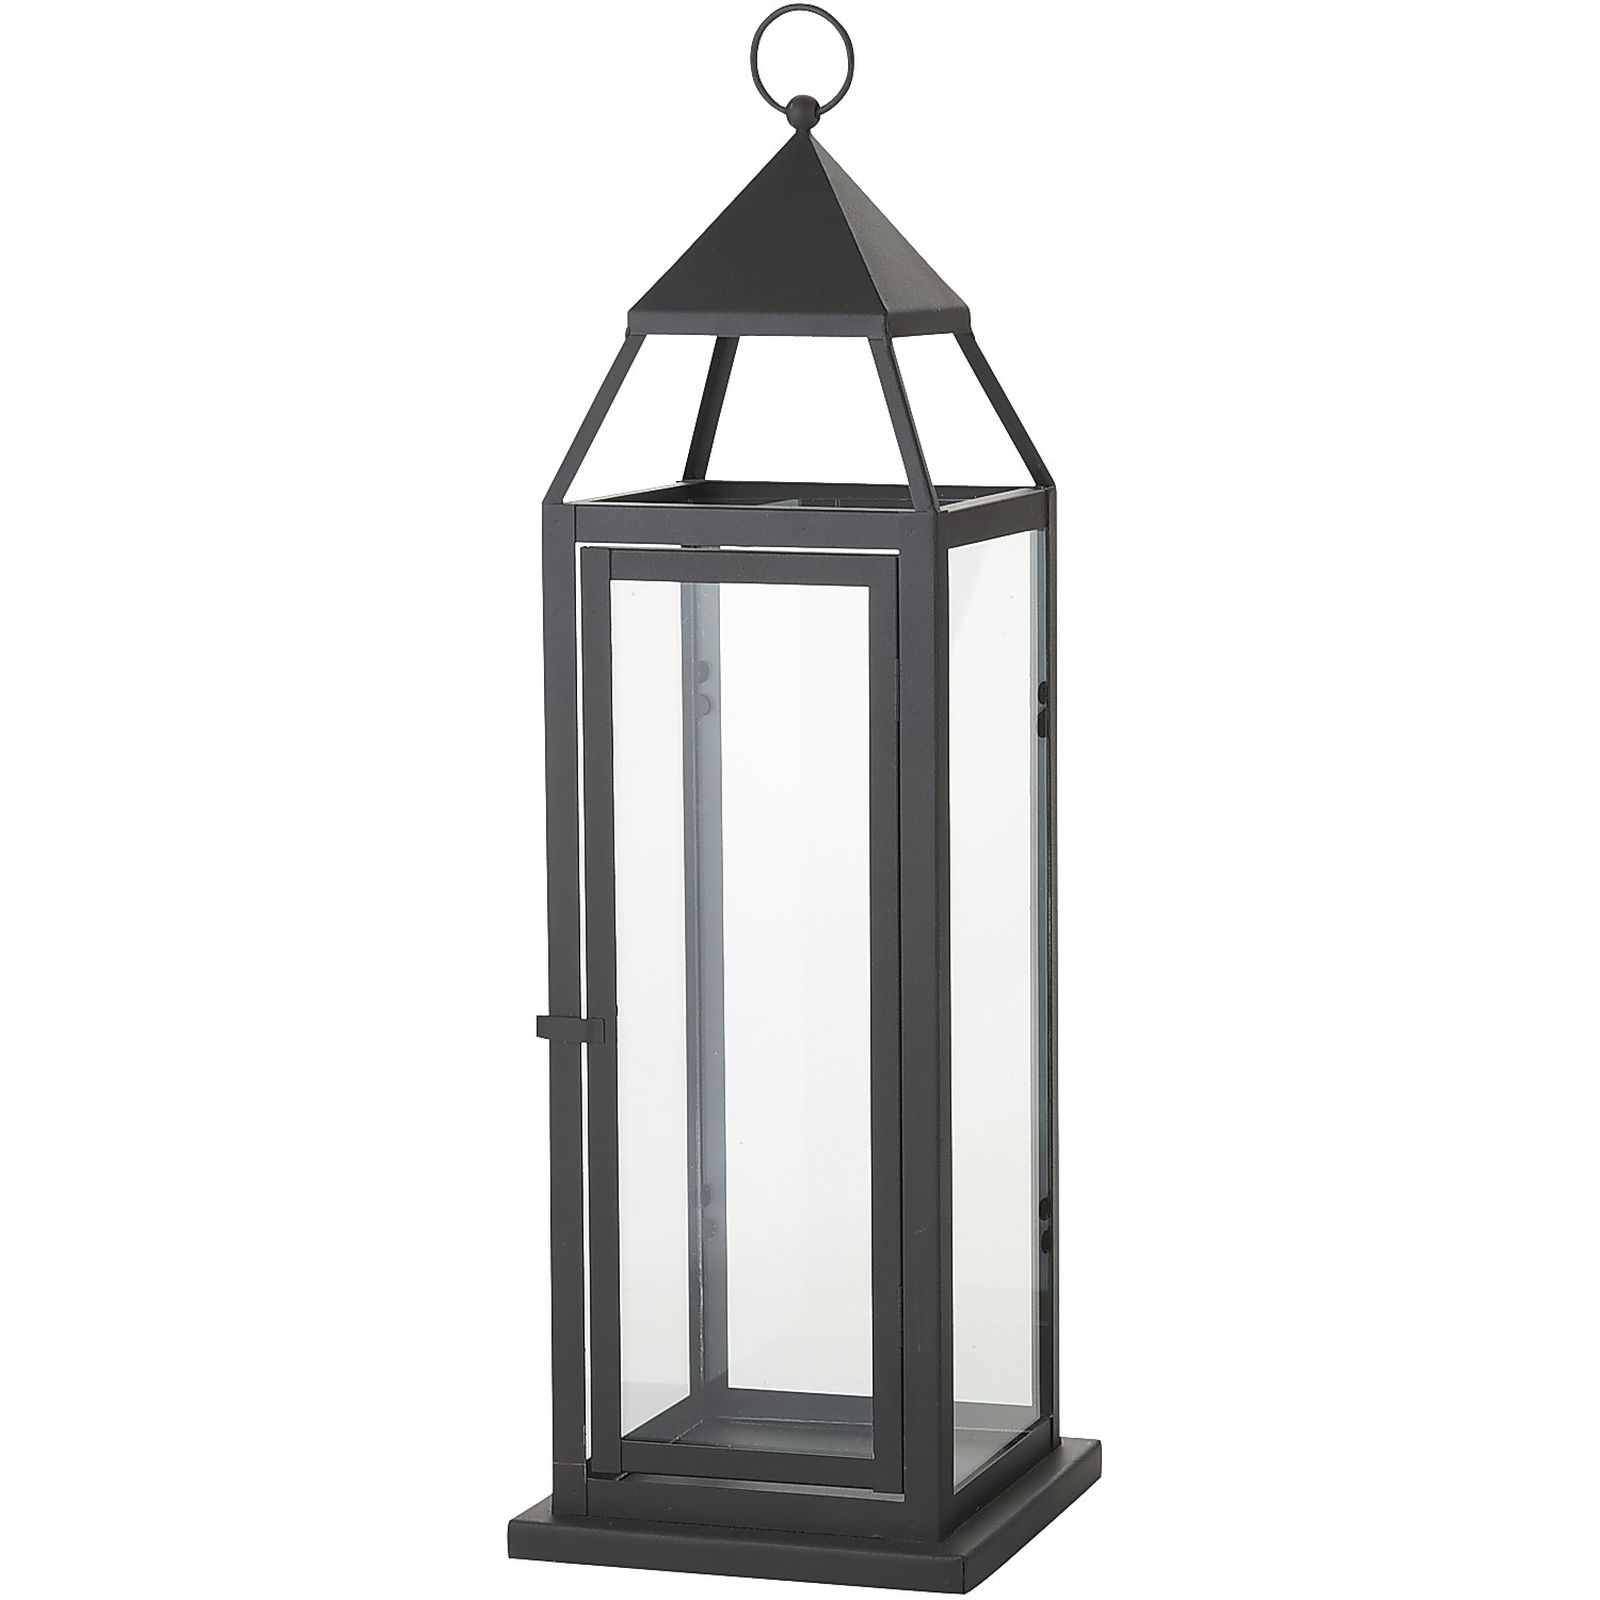 Indoor Outdoor Lanterns Lamp Post Solar Candles Door Ideas Lighting Intended For Well Liked Tall Outdoor Lanterns (View 3 of 20)